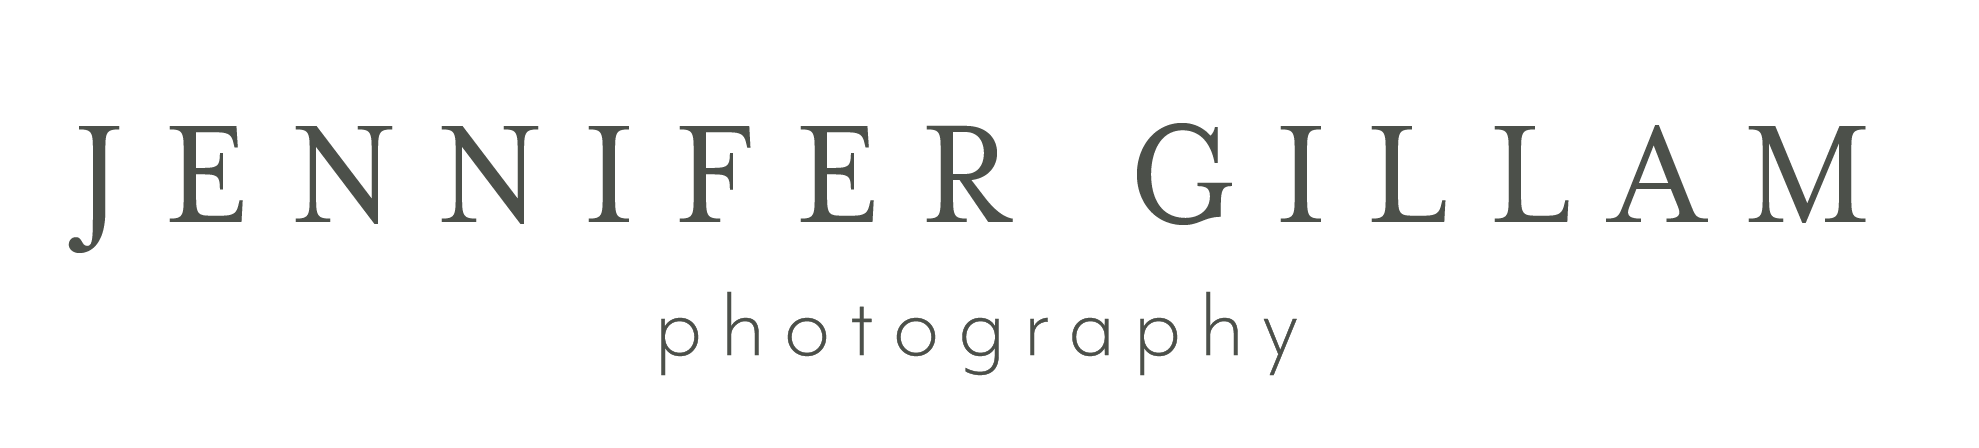 Jennifer Gillam Photography